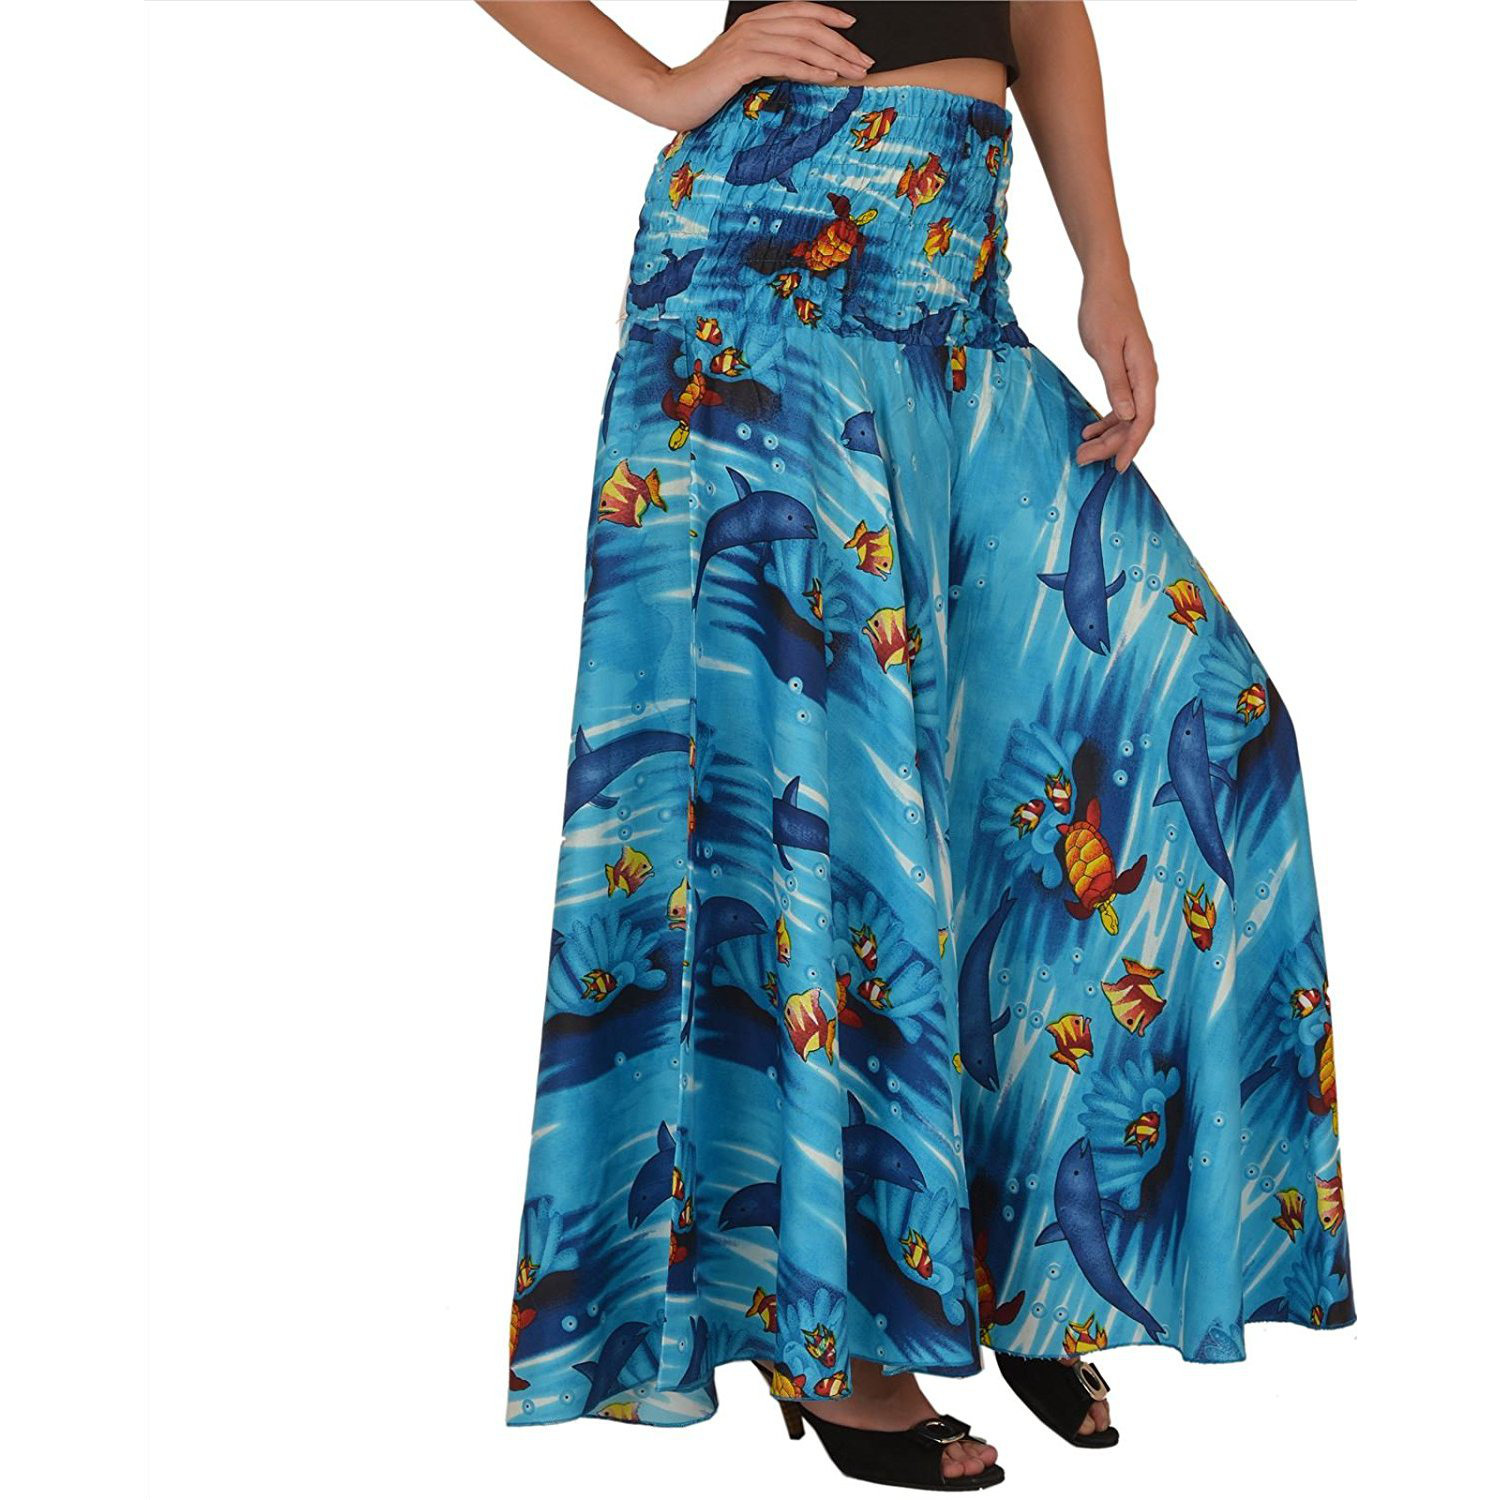 Sns Cotton Printed Wide Leg Palazzo Pants Trouser Pajama For Women Casual Wear: Clothing